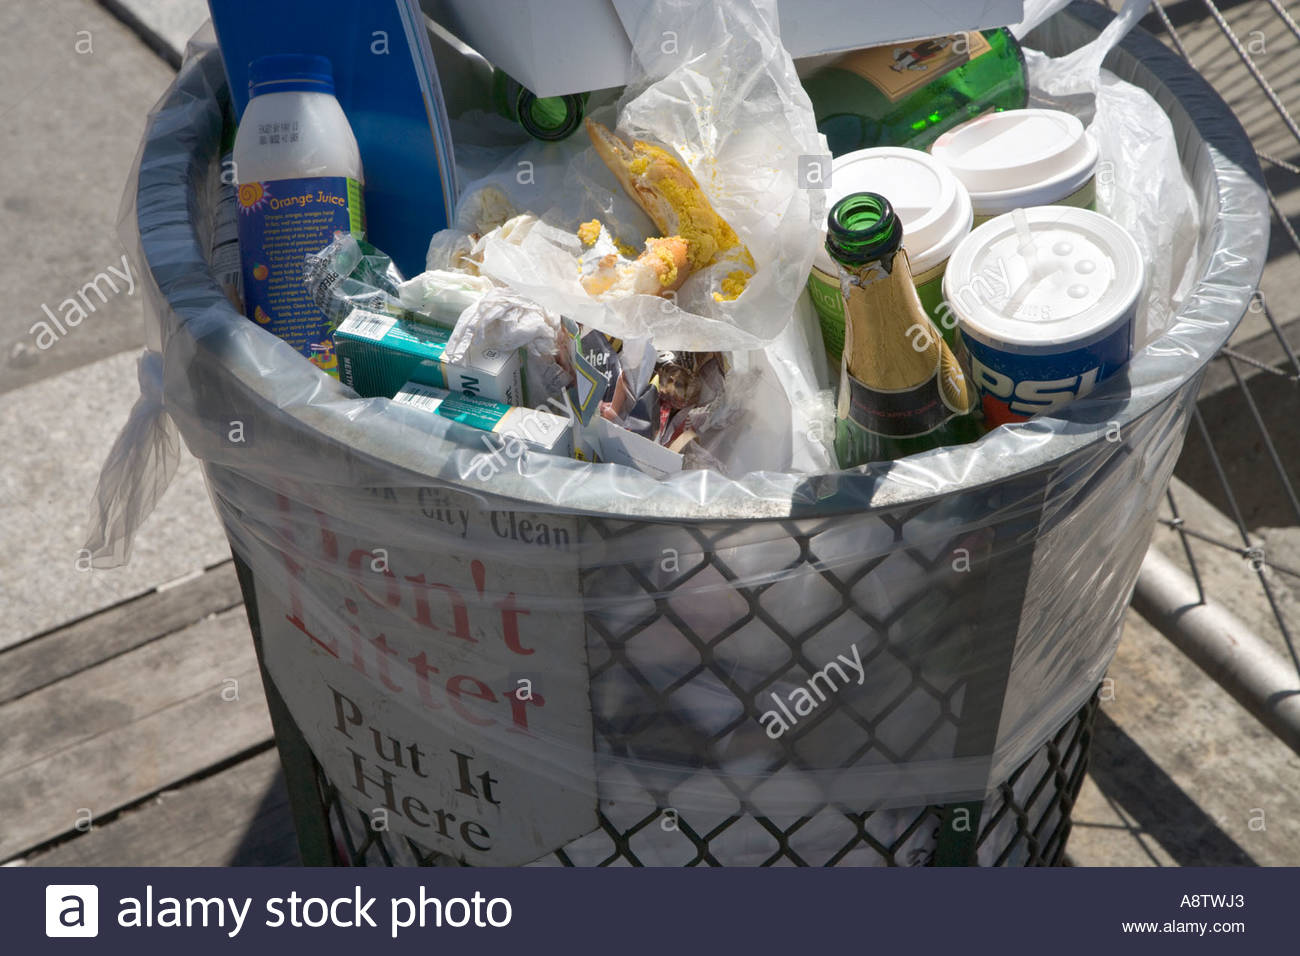 A Overflowing Trash Can Will With All Sorts Of Rubbish Including Beer Bottles